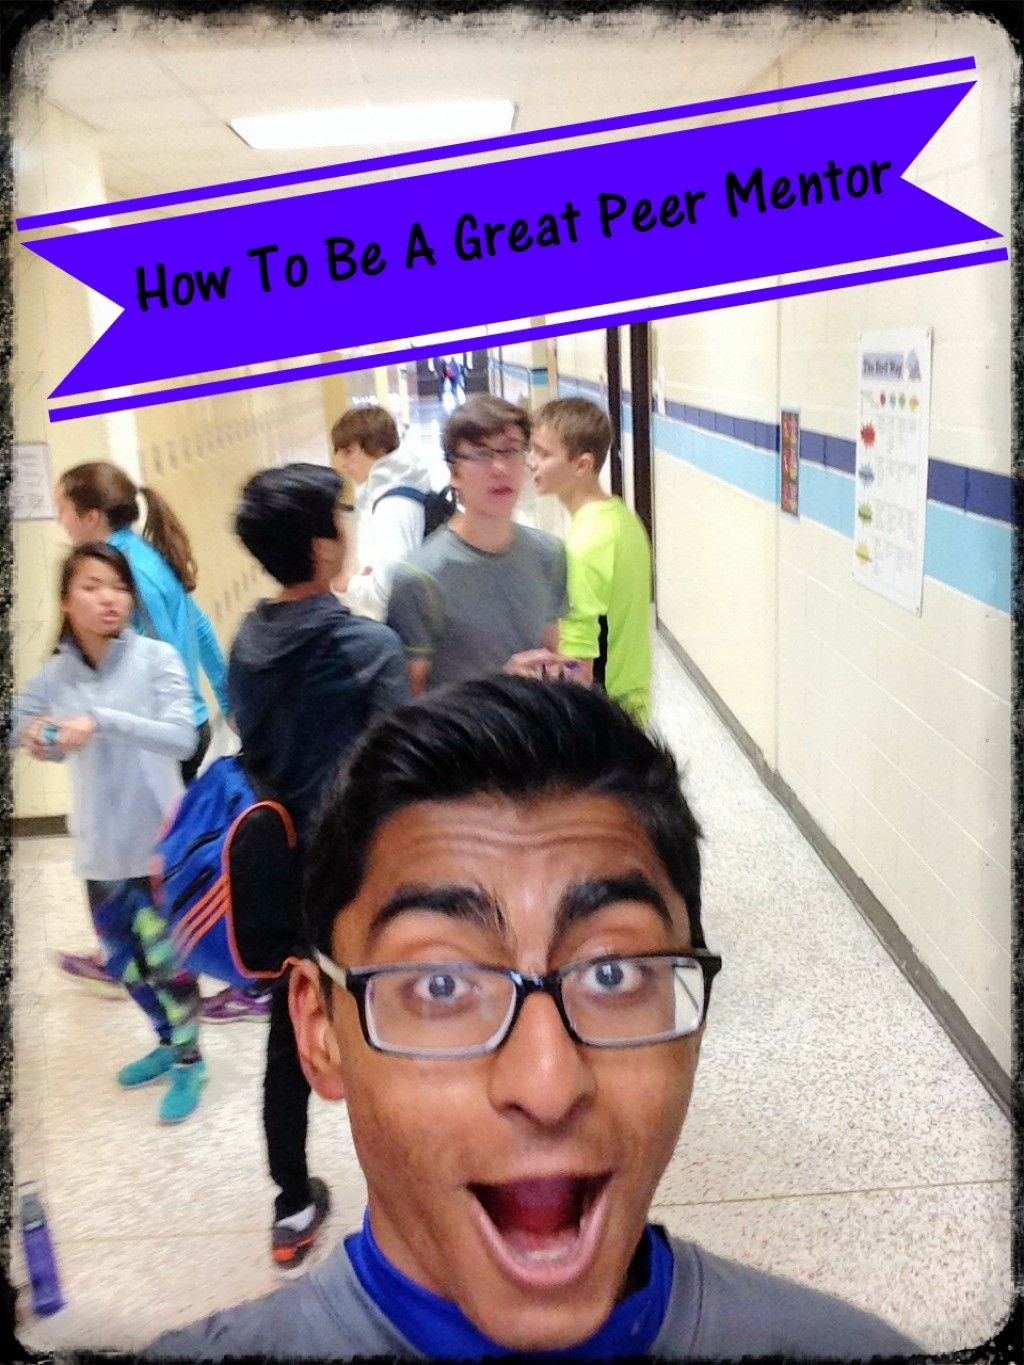 how to be an effective peer mentor to be how to be and high schools peer mentors are student leaders who provide encouragement and support to new students by establishing an